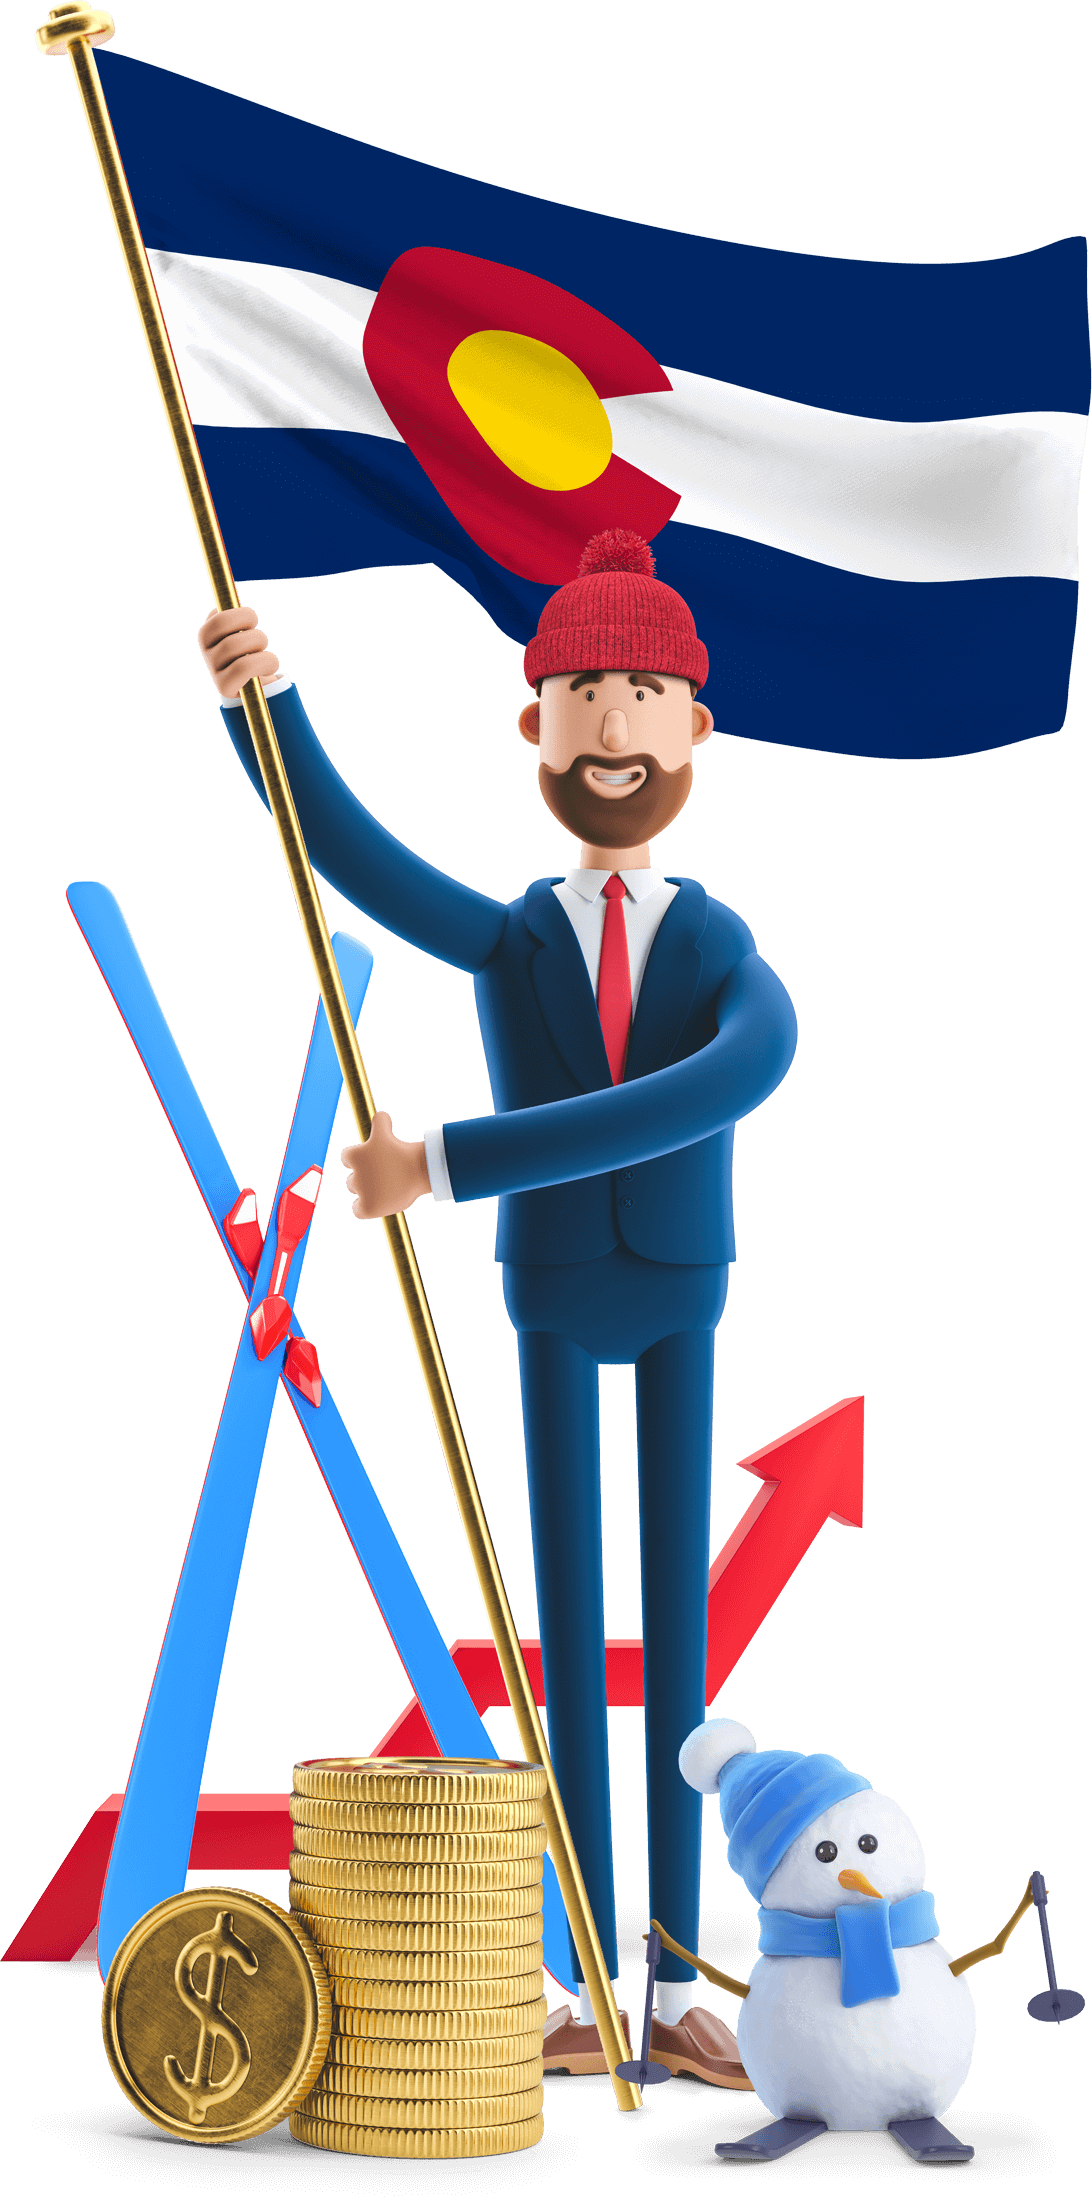 Colorado flag held by MetCredit USA businessman who's wearing a beanie and standing beside skis and a snowman